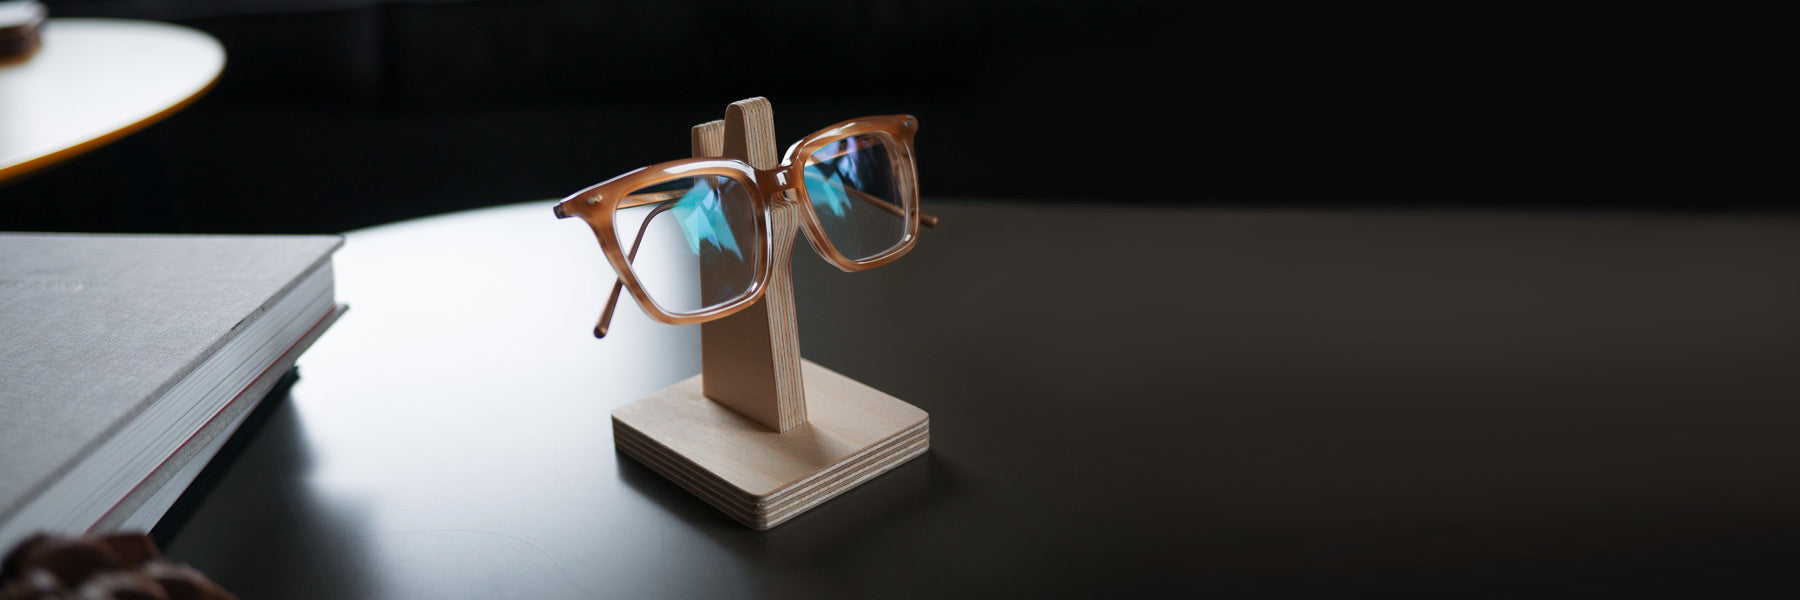 8 benefits of a spectacle holder